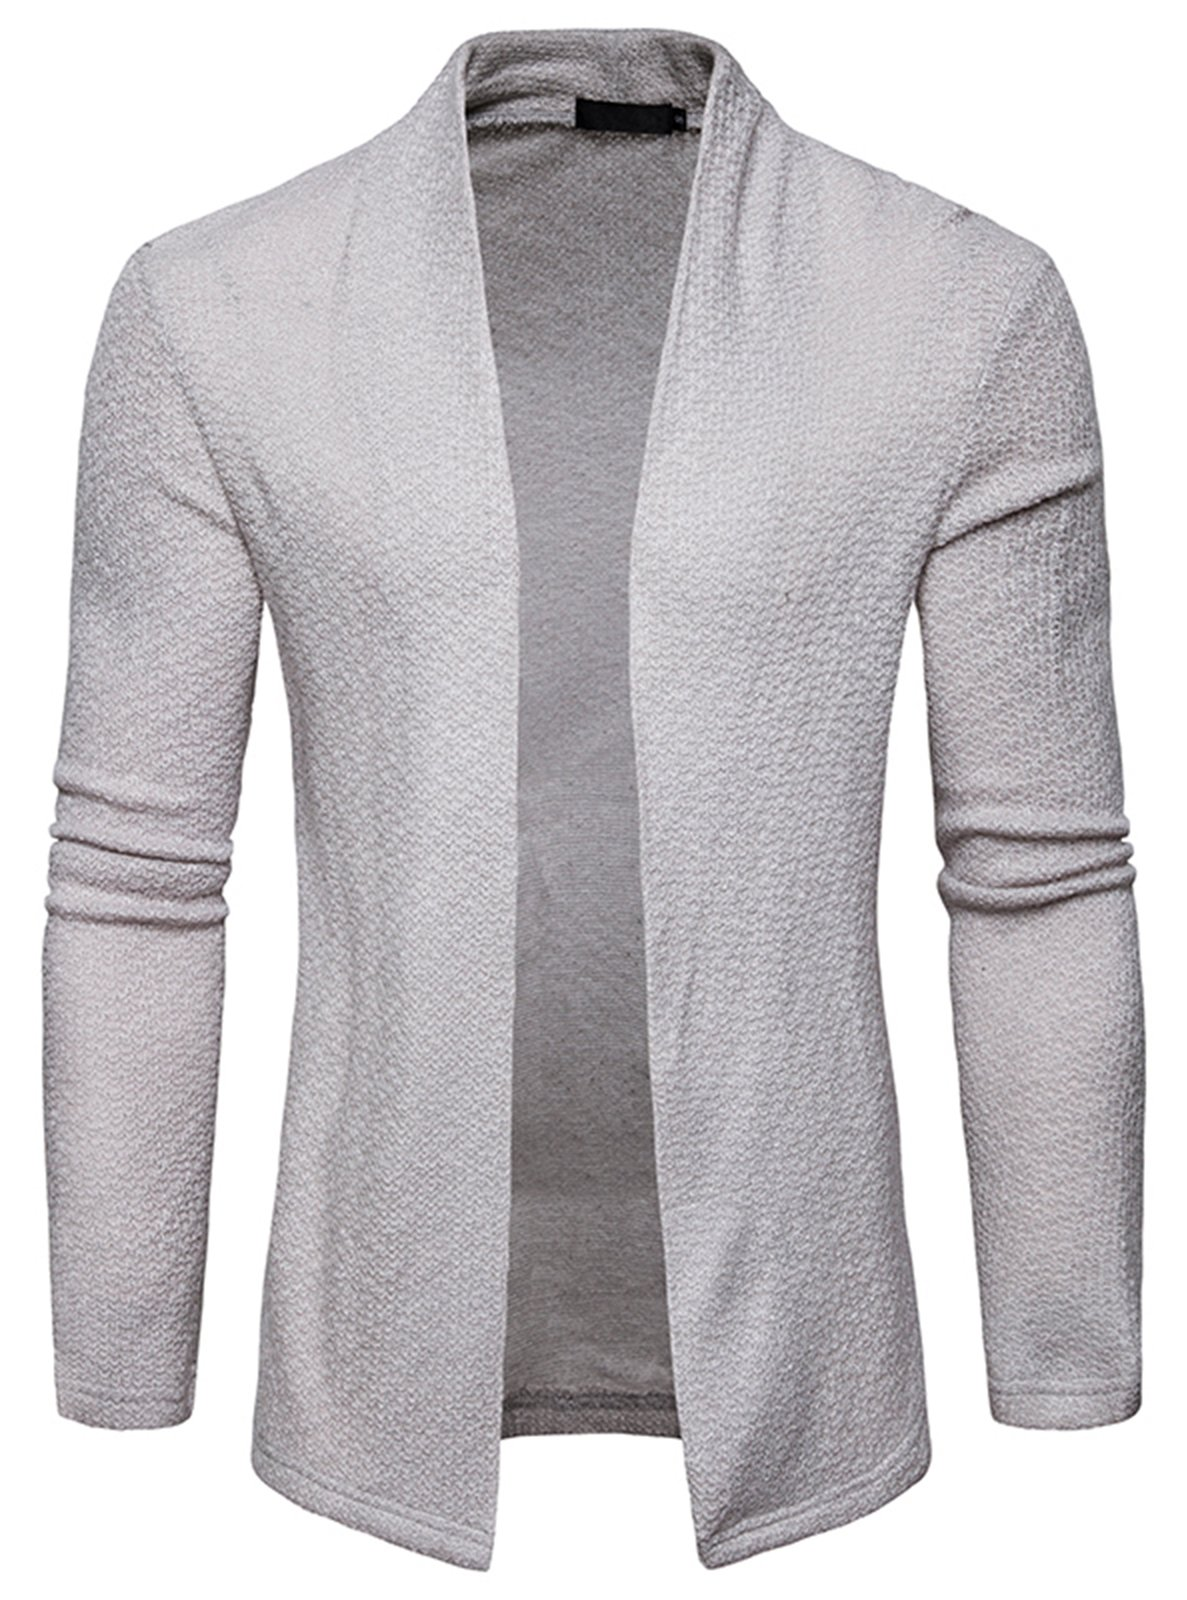 WHATLEES Mens Casual Long Sleeve Open Front Slim Fit Shawl Collar Cardigans Sweater B938-LightGray-XL